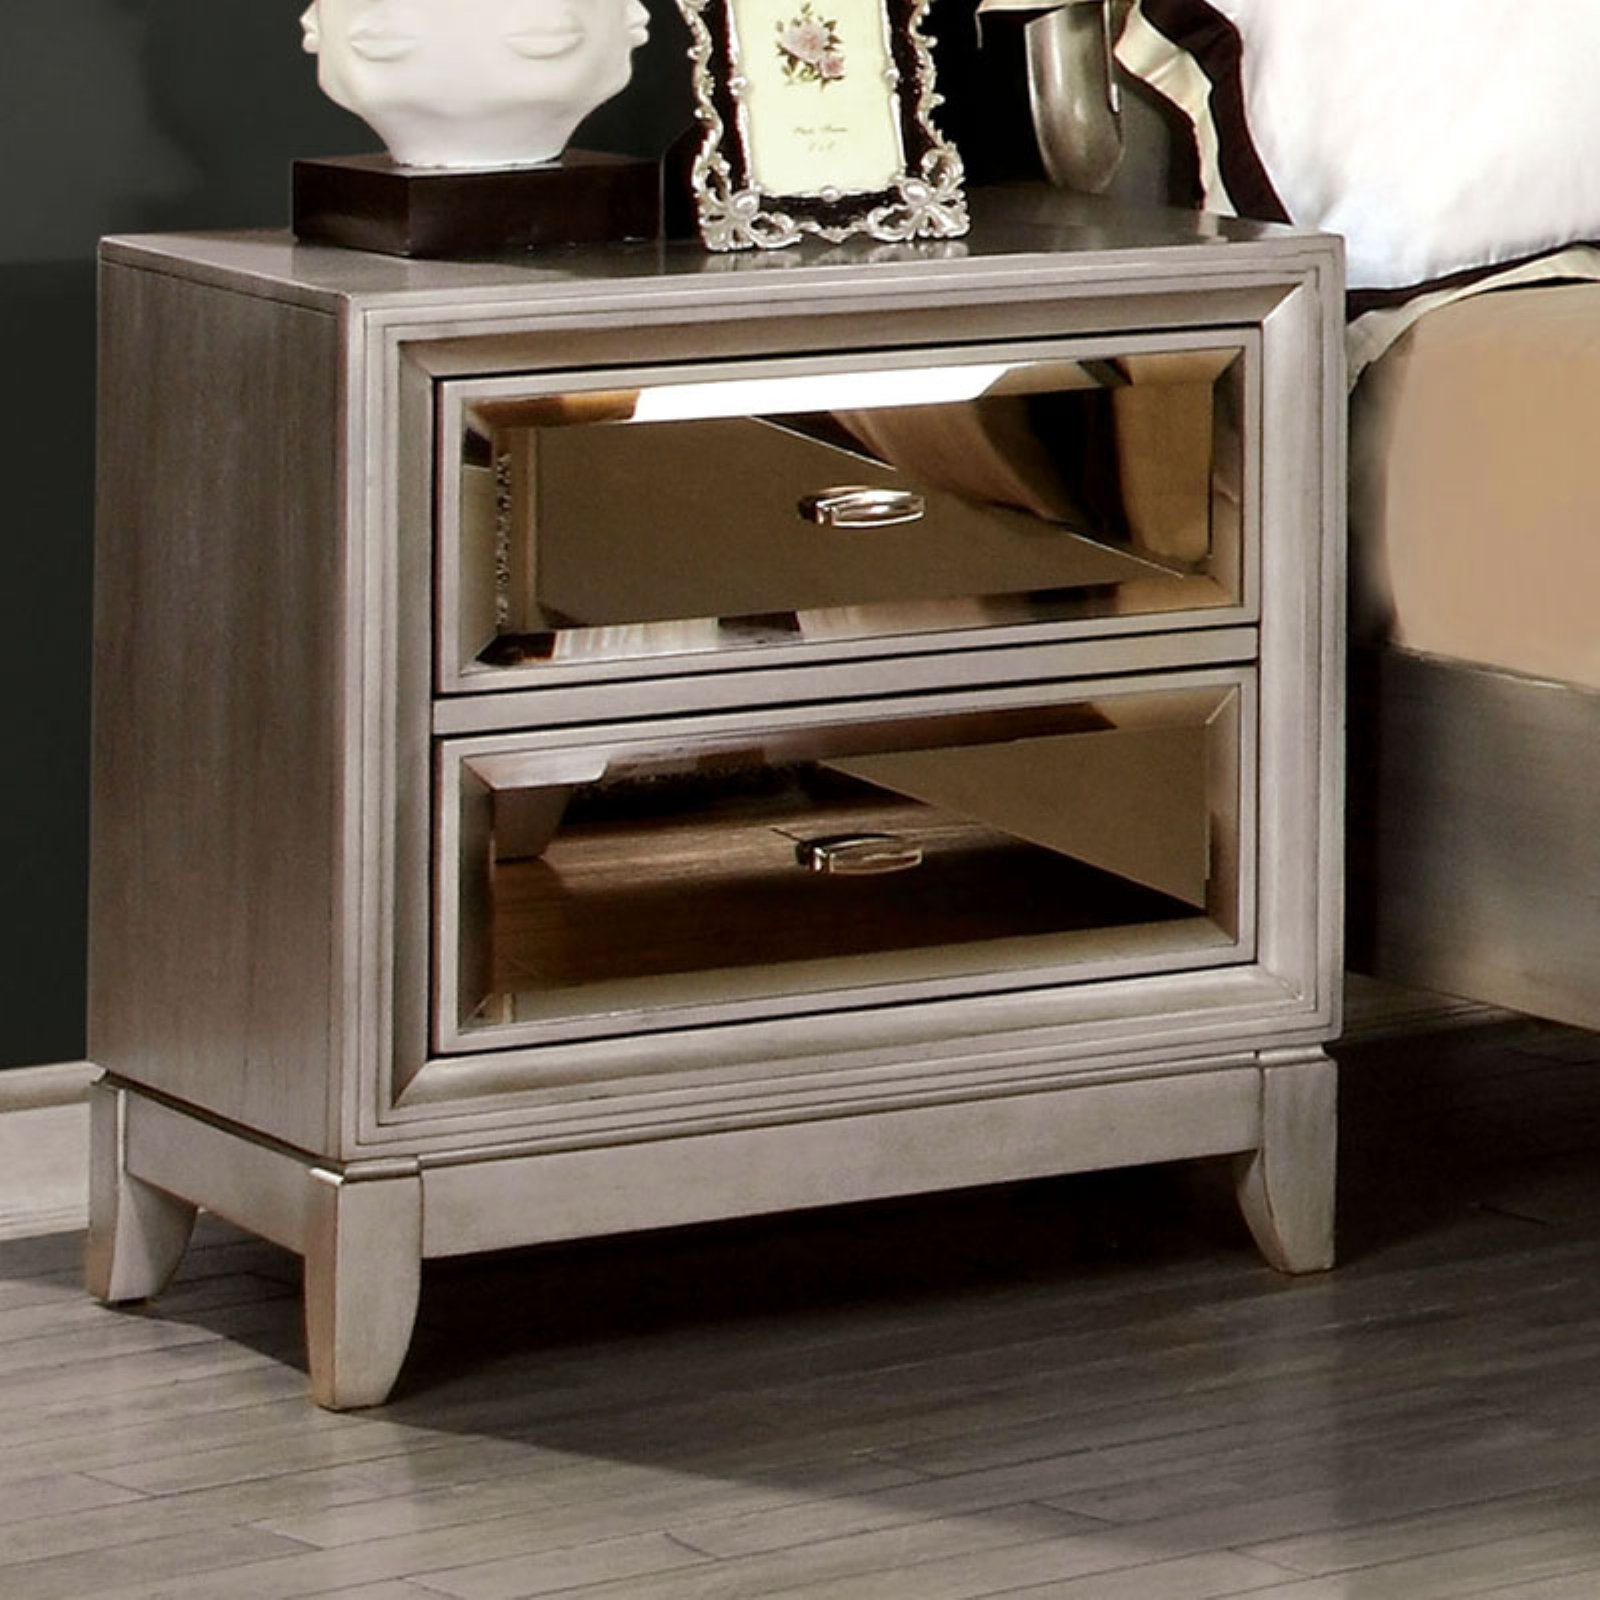 Furniture of America Glaciara 2 Drawer Nightstand